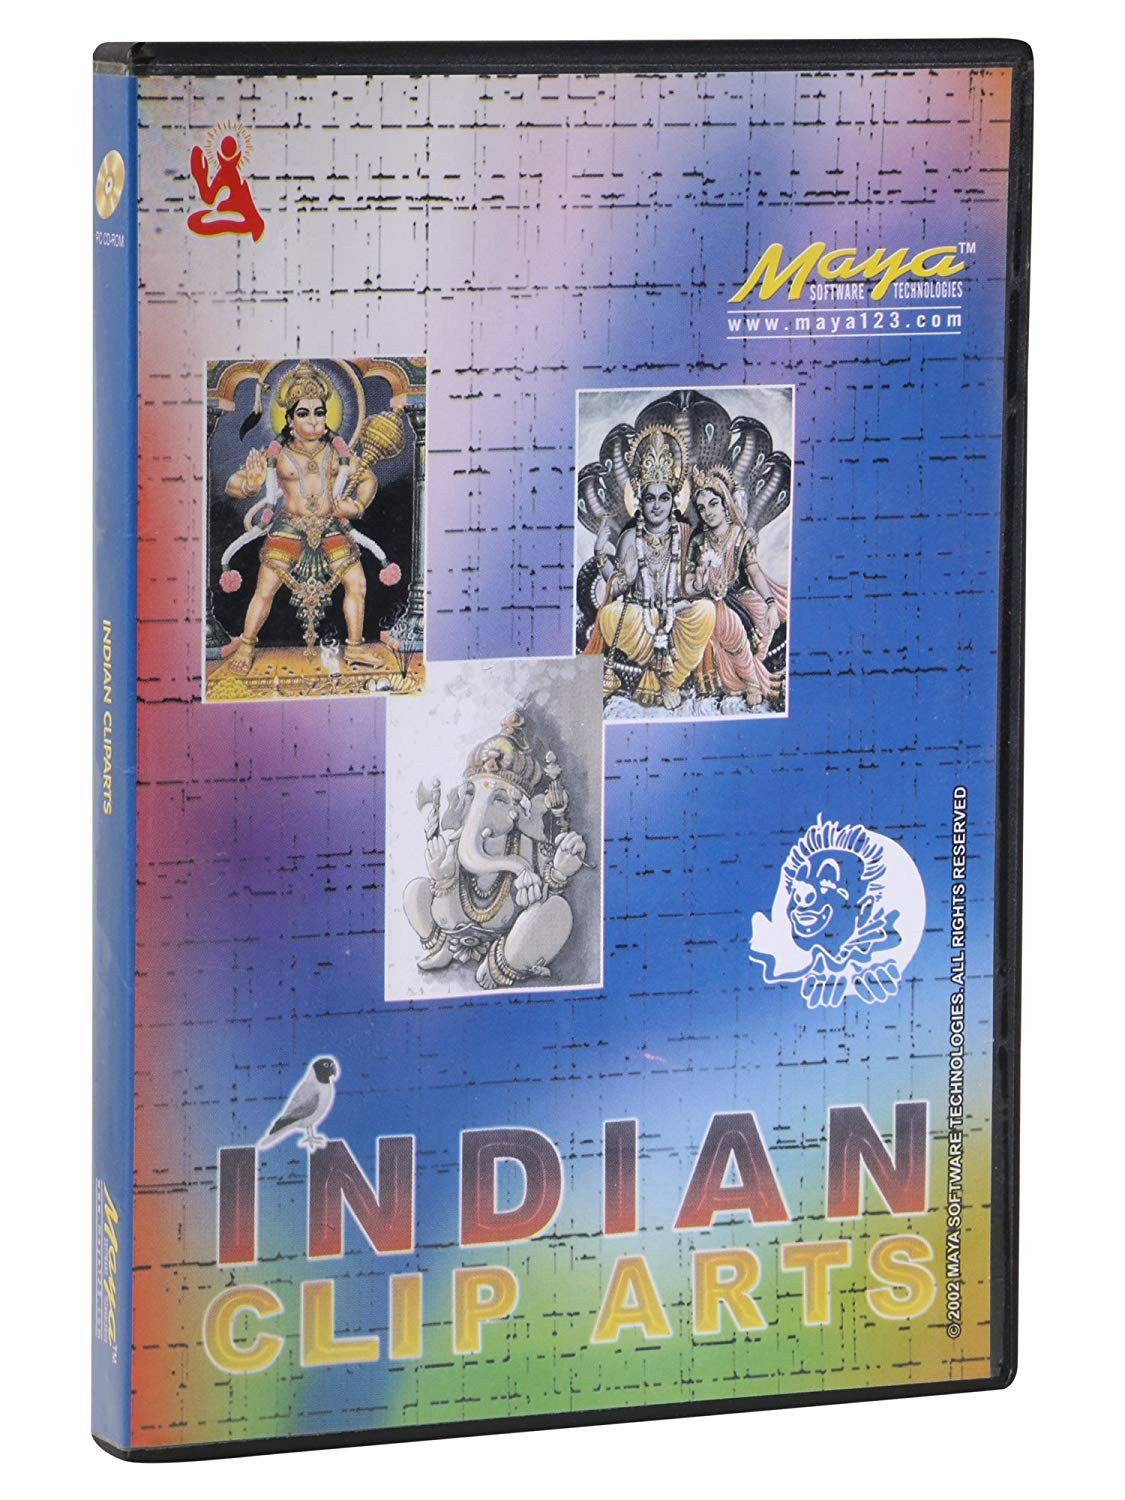 Buy Indian Cliparts In Different Categories (CD.